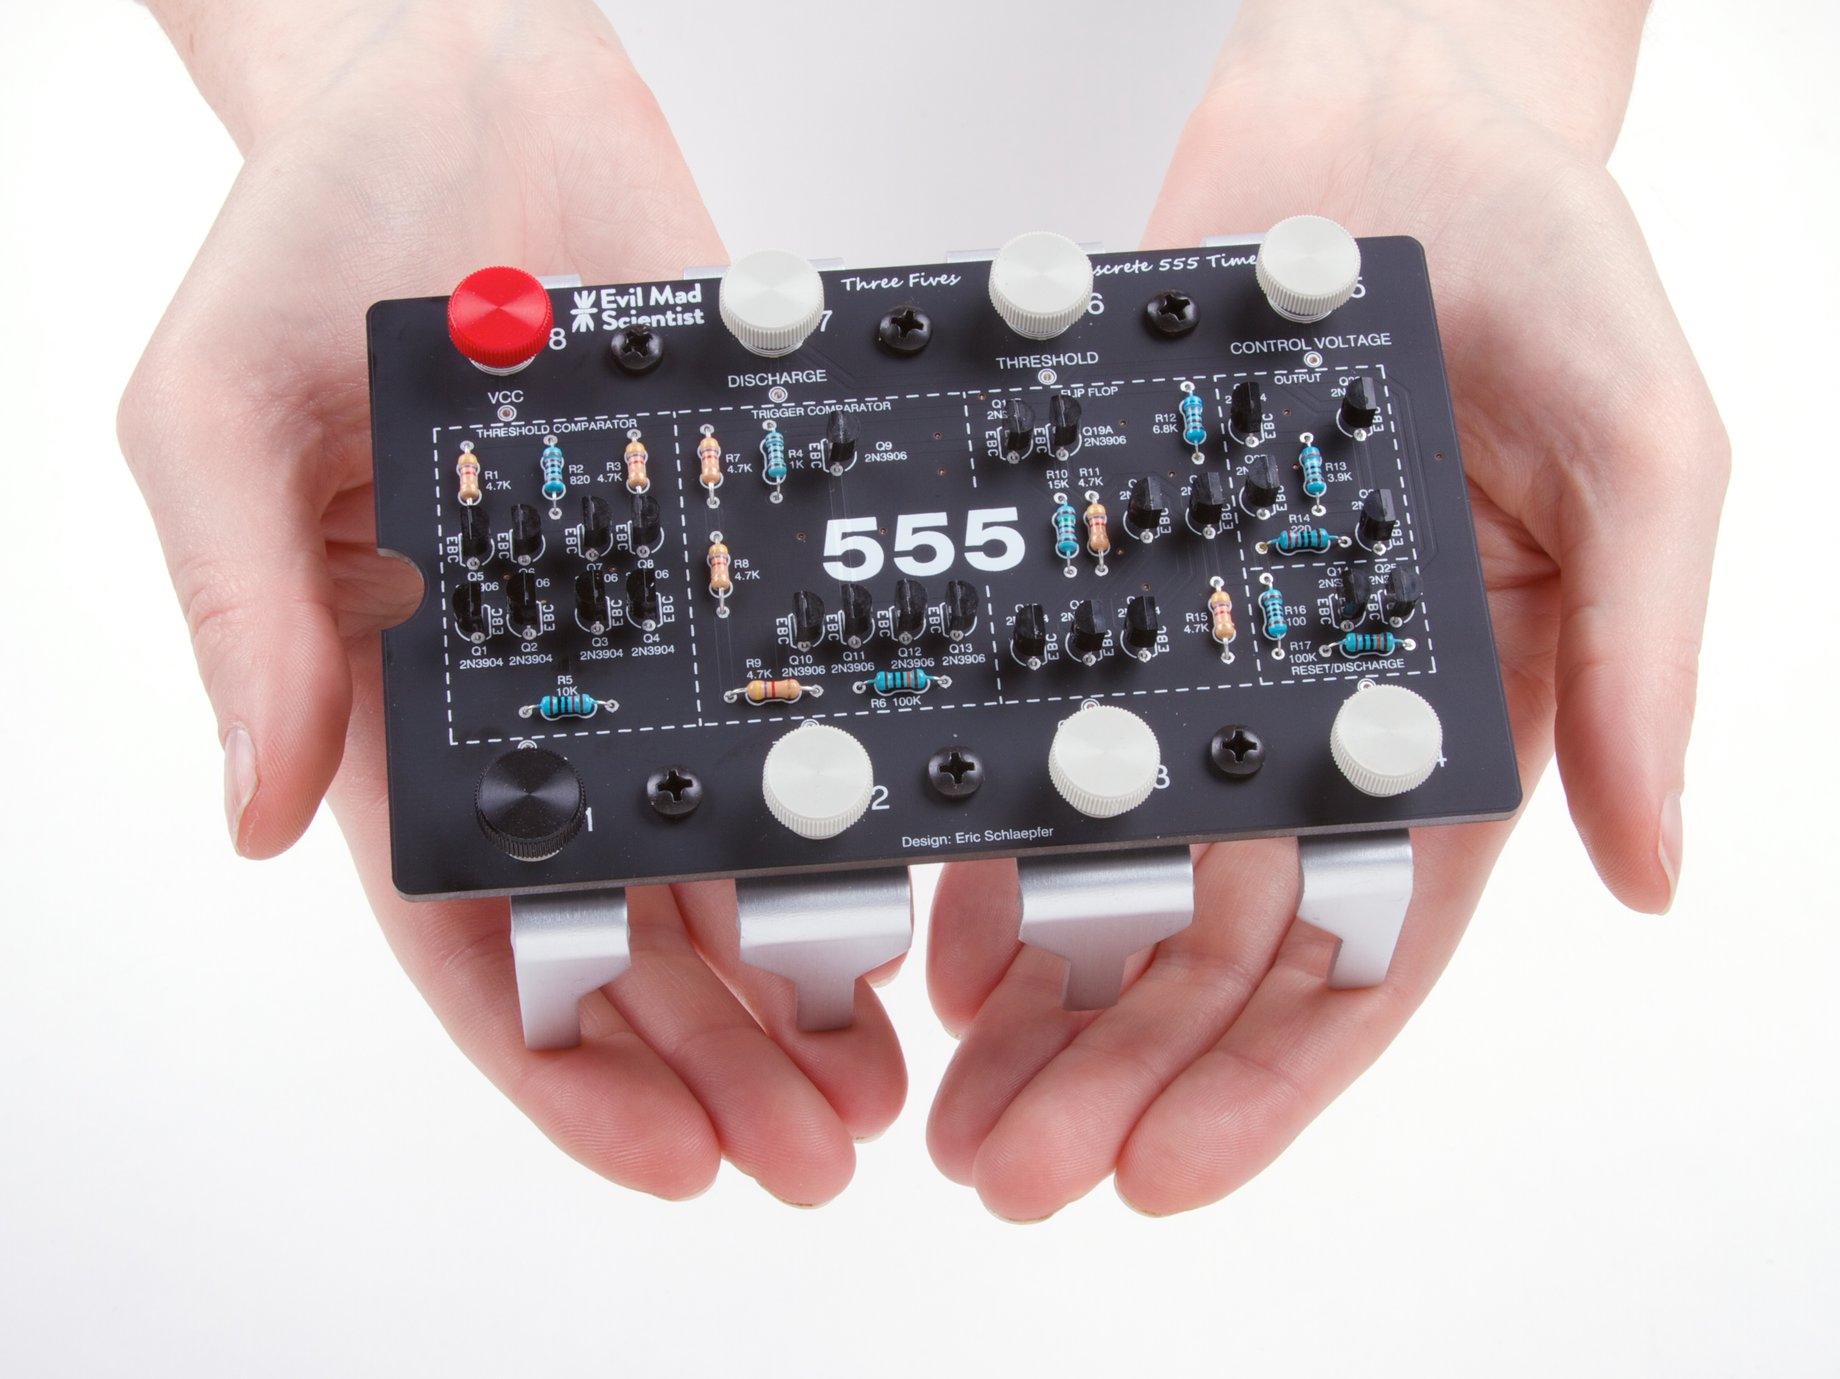 The Three Fives Kit A Discrete 555 Timer Create Circuit On Board However Before We Could Do Sku